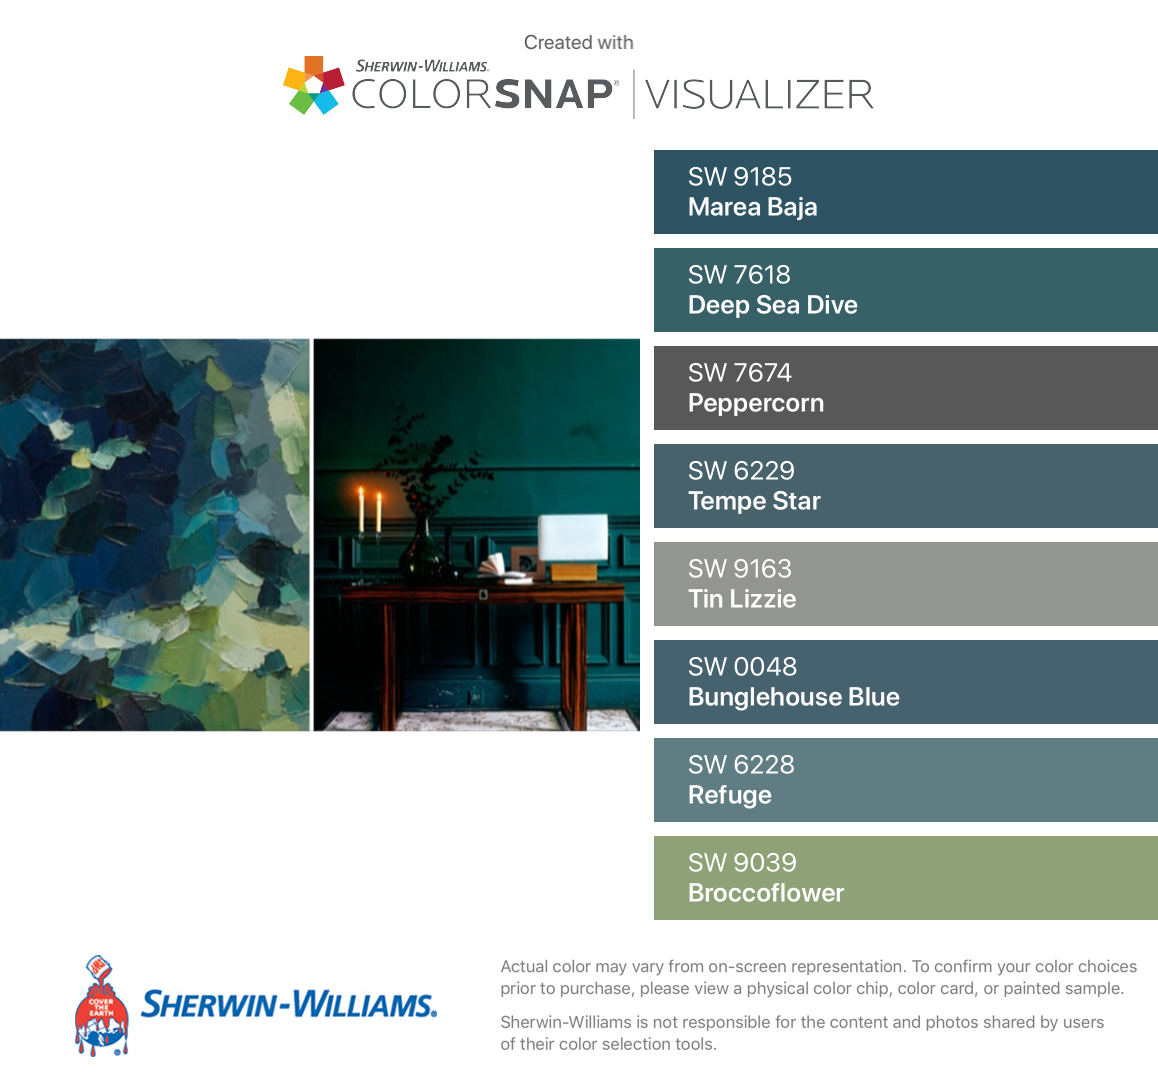 I Found These Colors With Colorsnap Visualizer For Iphone By Sherwin Williams Marea Baja Sw 9185 Deep Sea Dive Sw 7618 Peppercorn Sw Blue Green Paints Sea Green Bedrooms House Colors